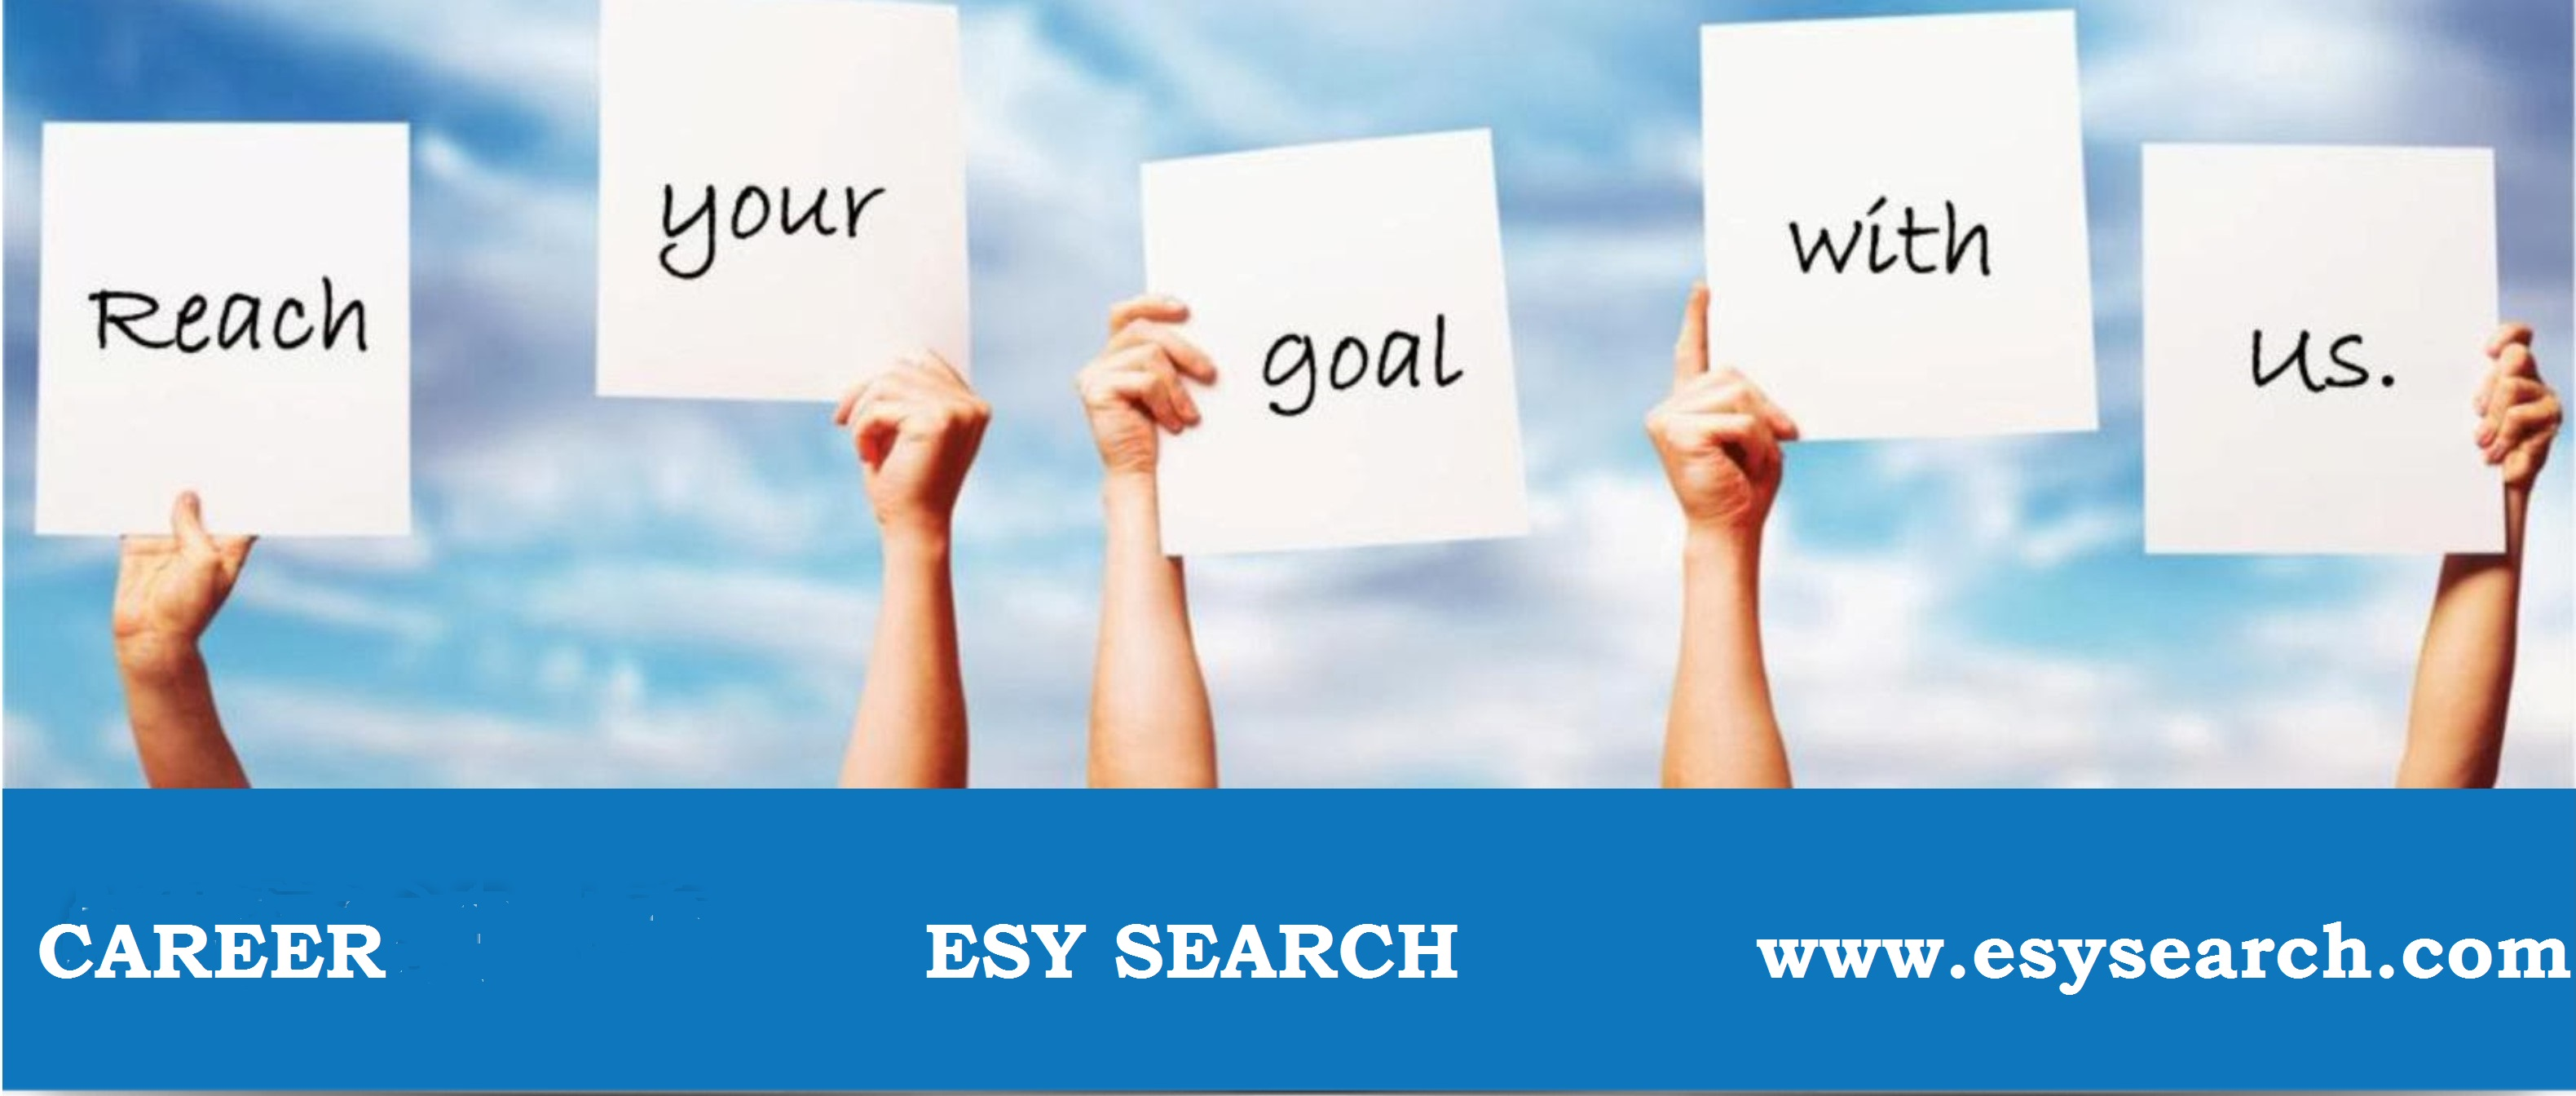 Esy Search Career Banner